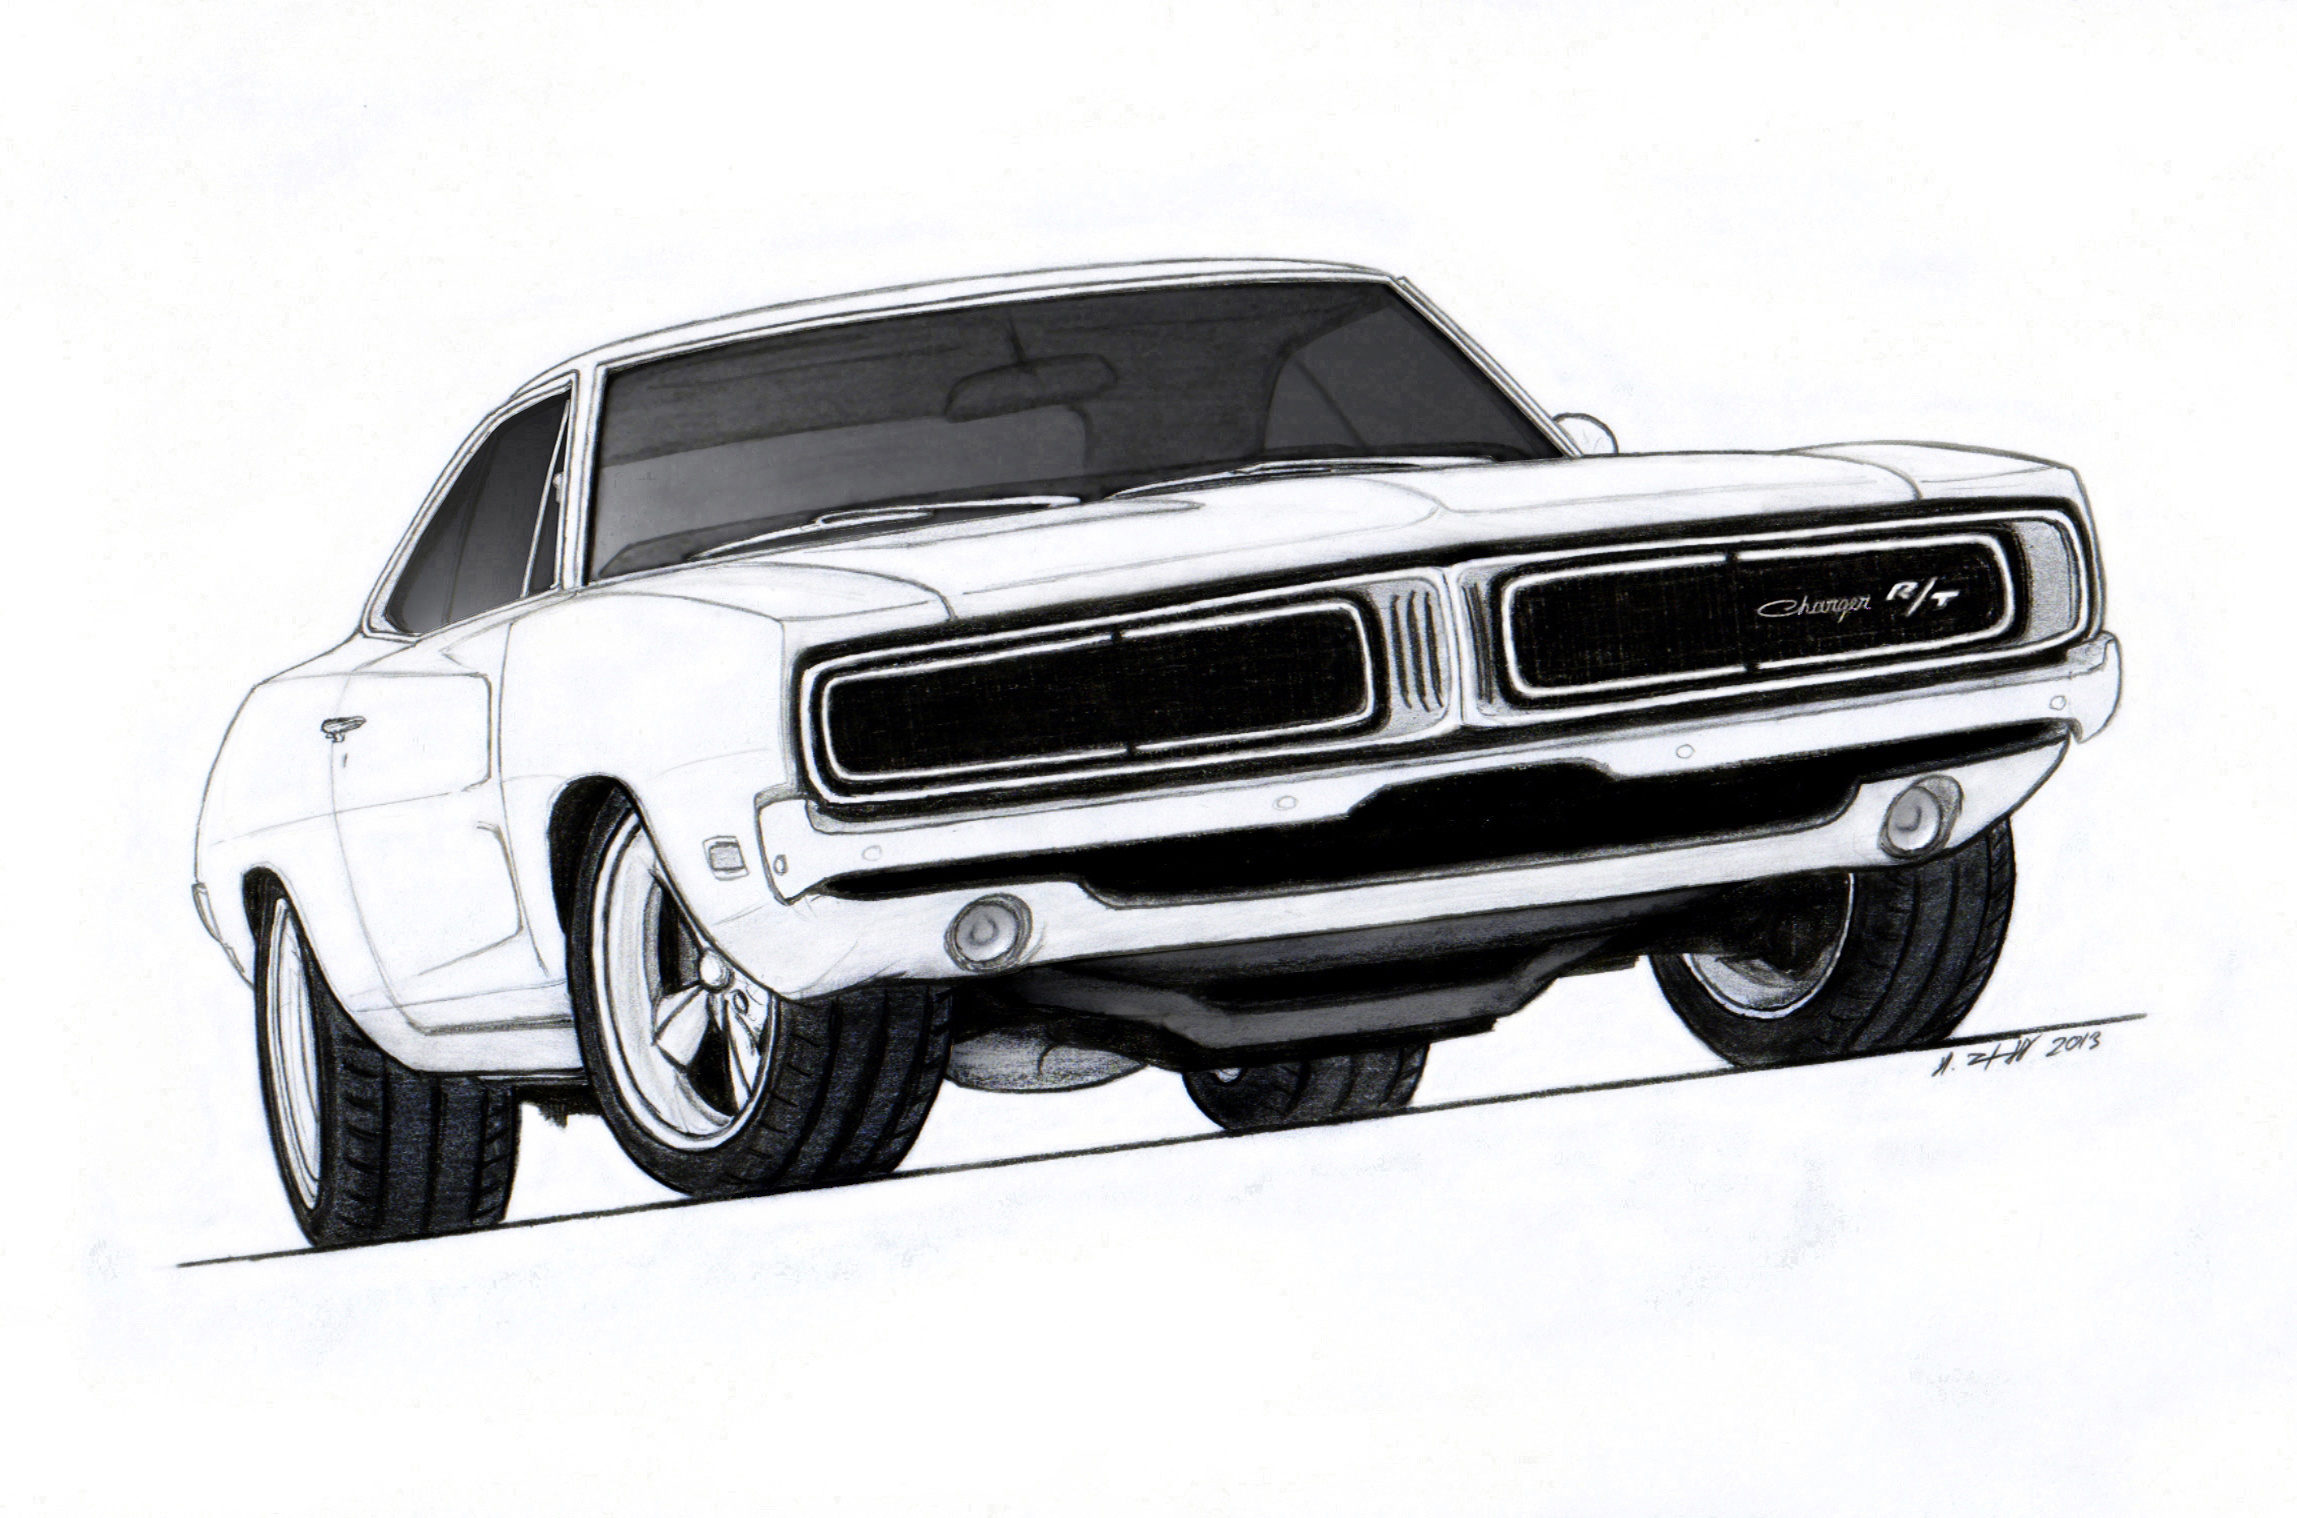 1969 dodge charger r t pro touring drawing by vertualissimo on deviantart. Black Bedroom Furniture Sets. Home Design Ideas